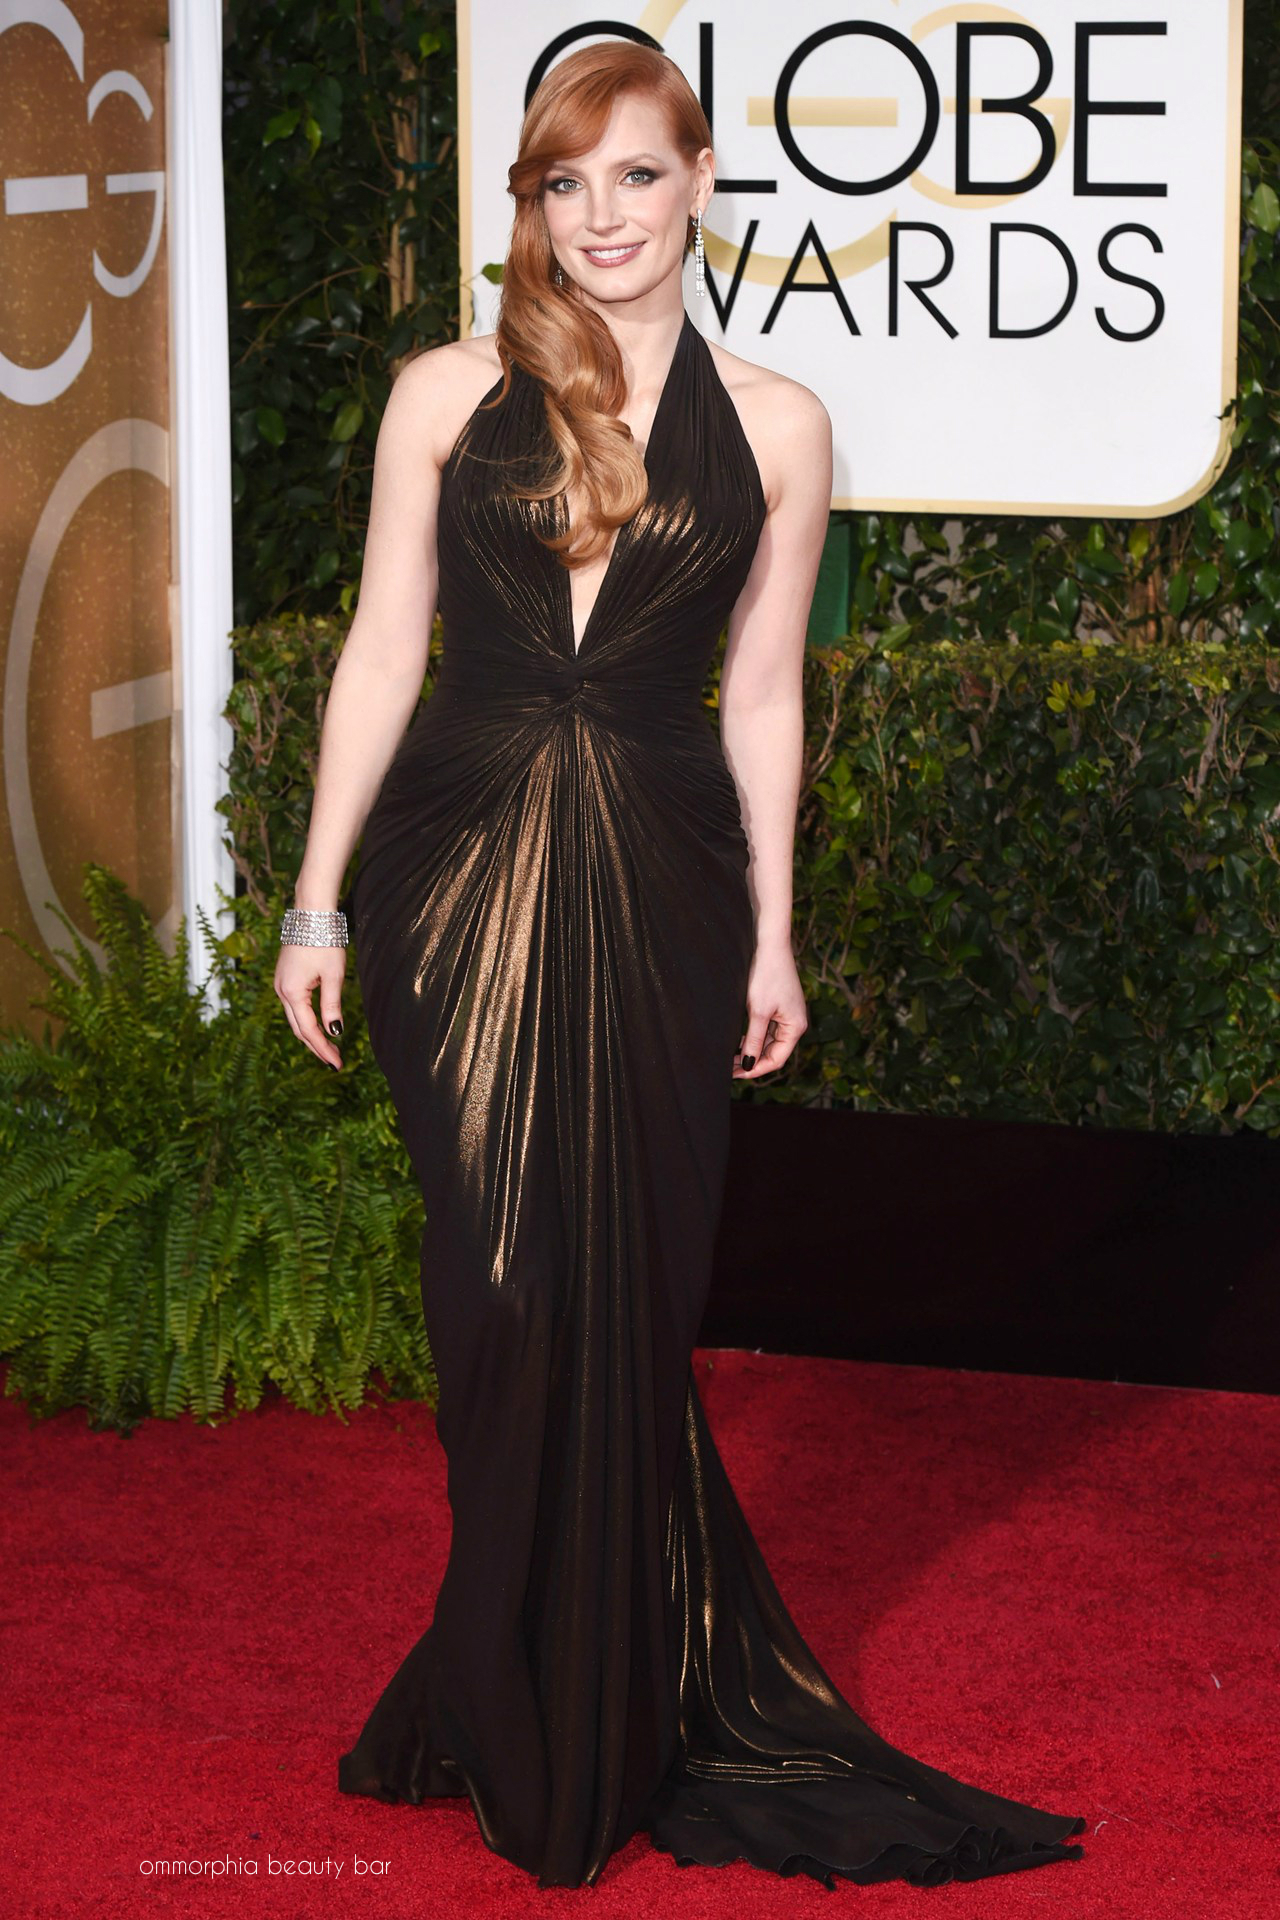 54b5af2f5c2 Golden Globes 2015 Jessica Chastain. Jessica Chastain in a Versace gown